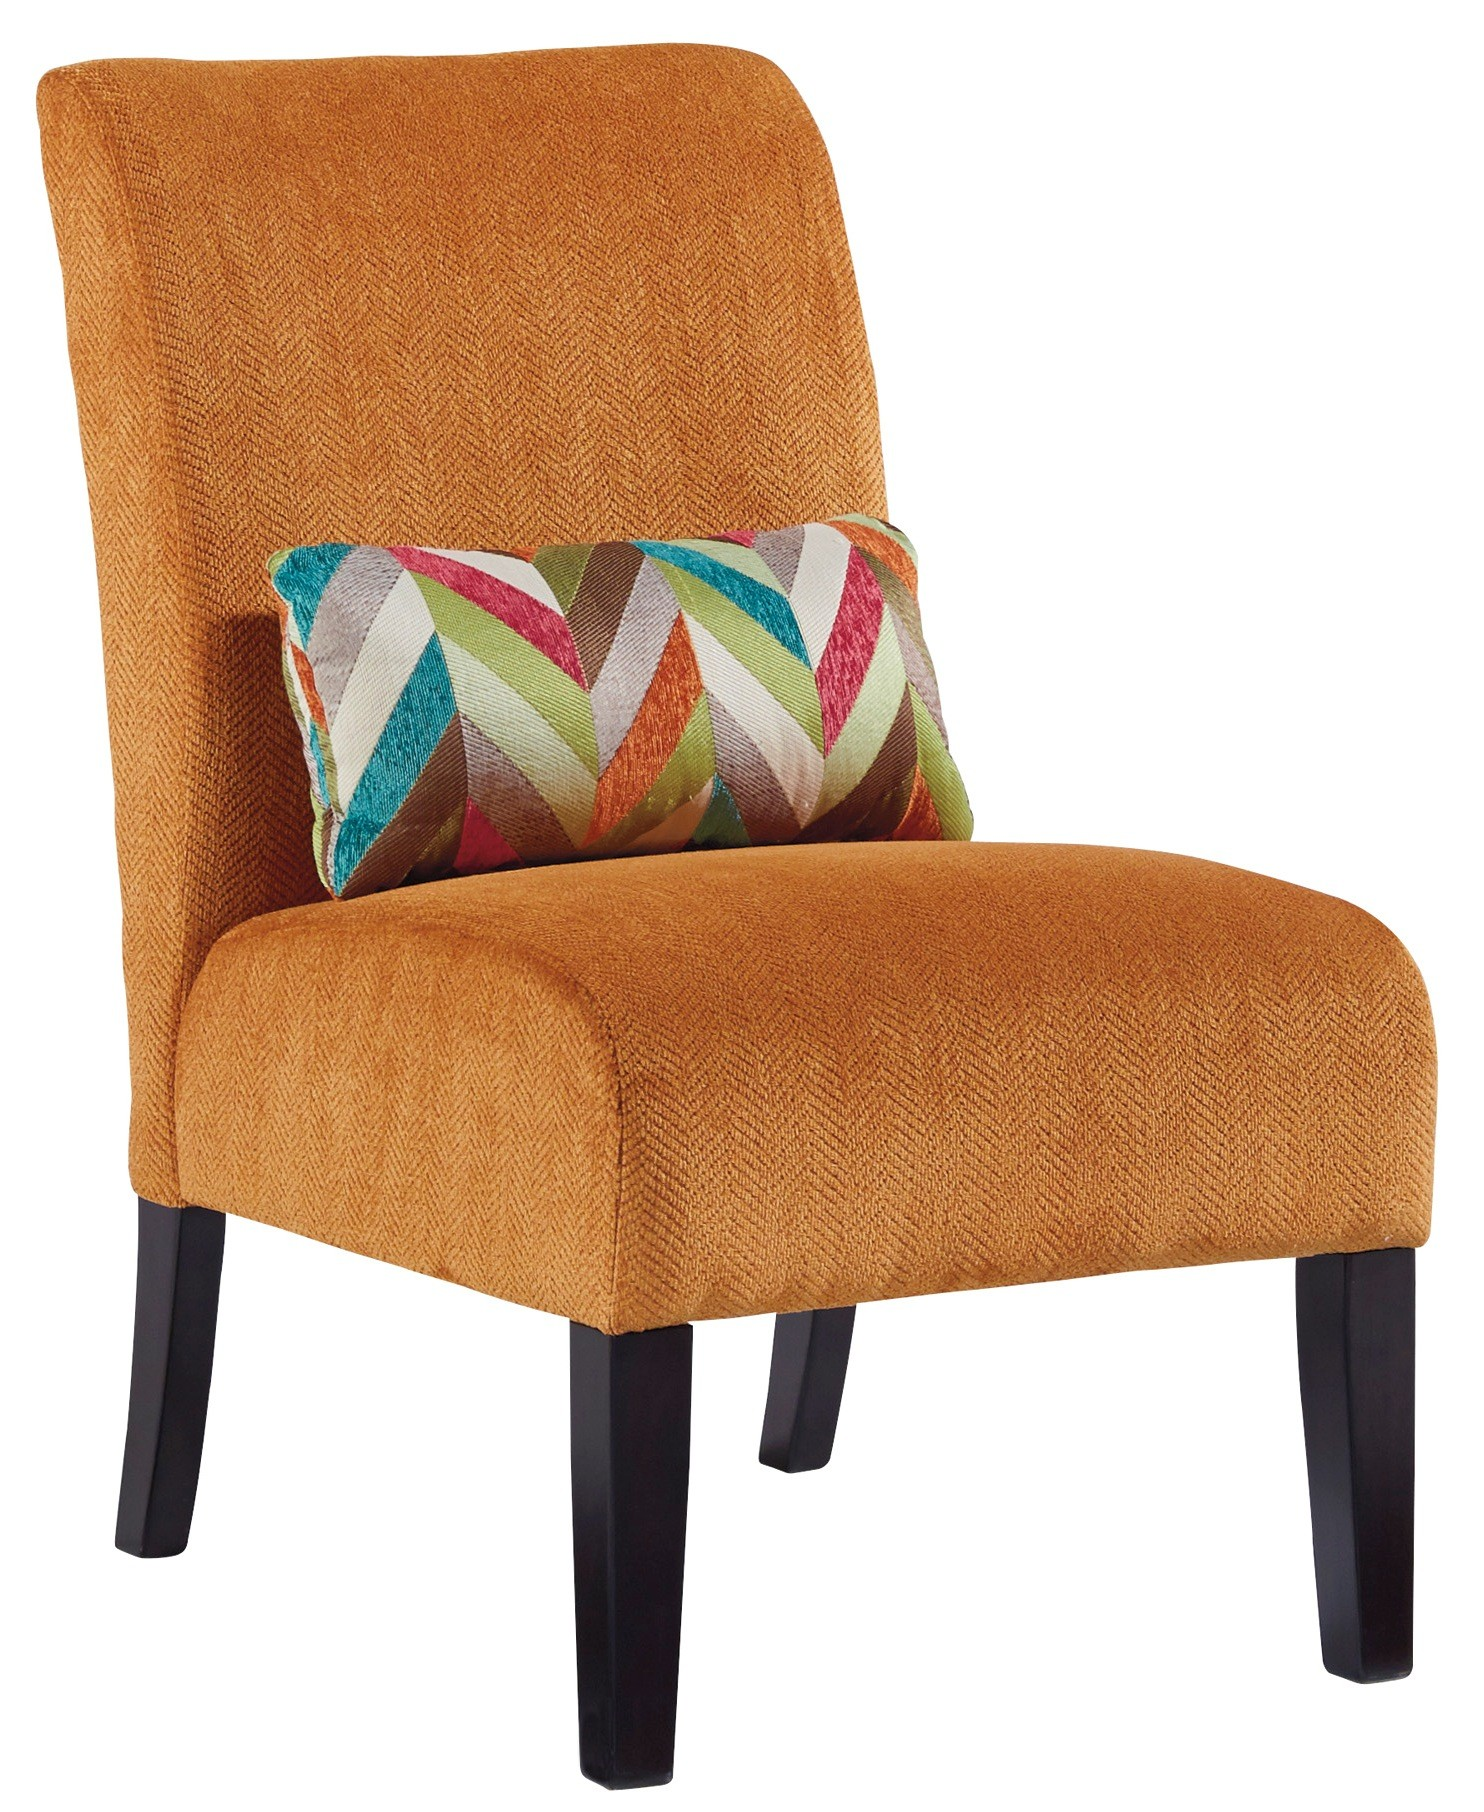 Annora Orange Accent Chair From Ashley 6160260 Coleman